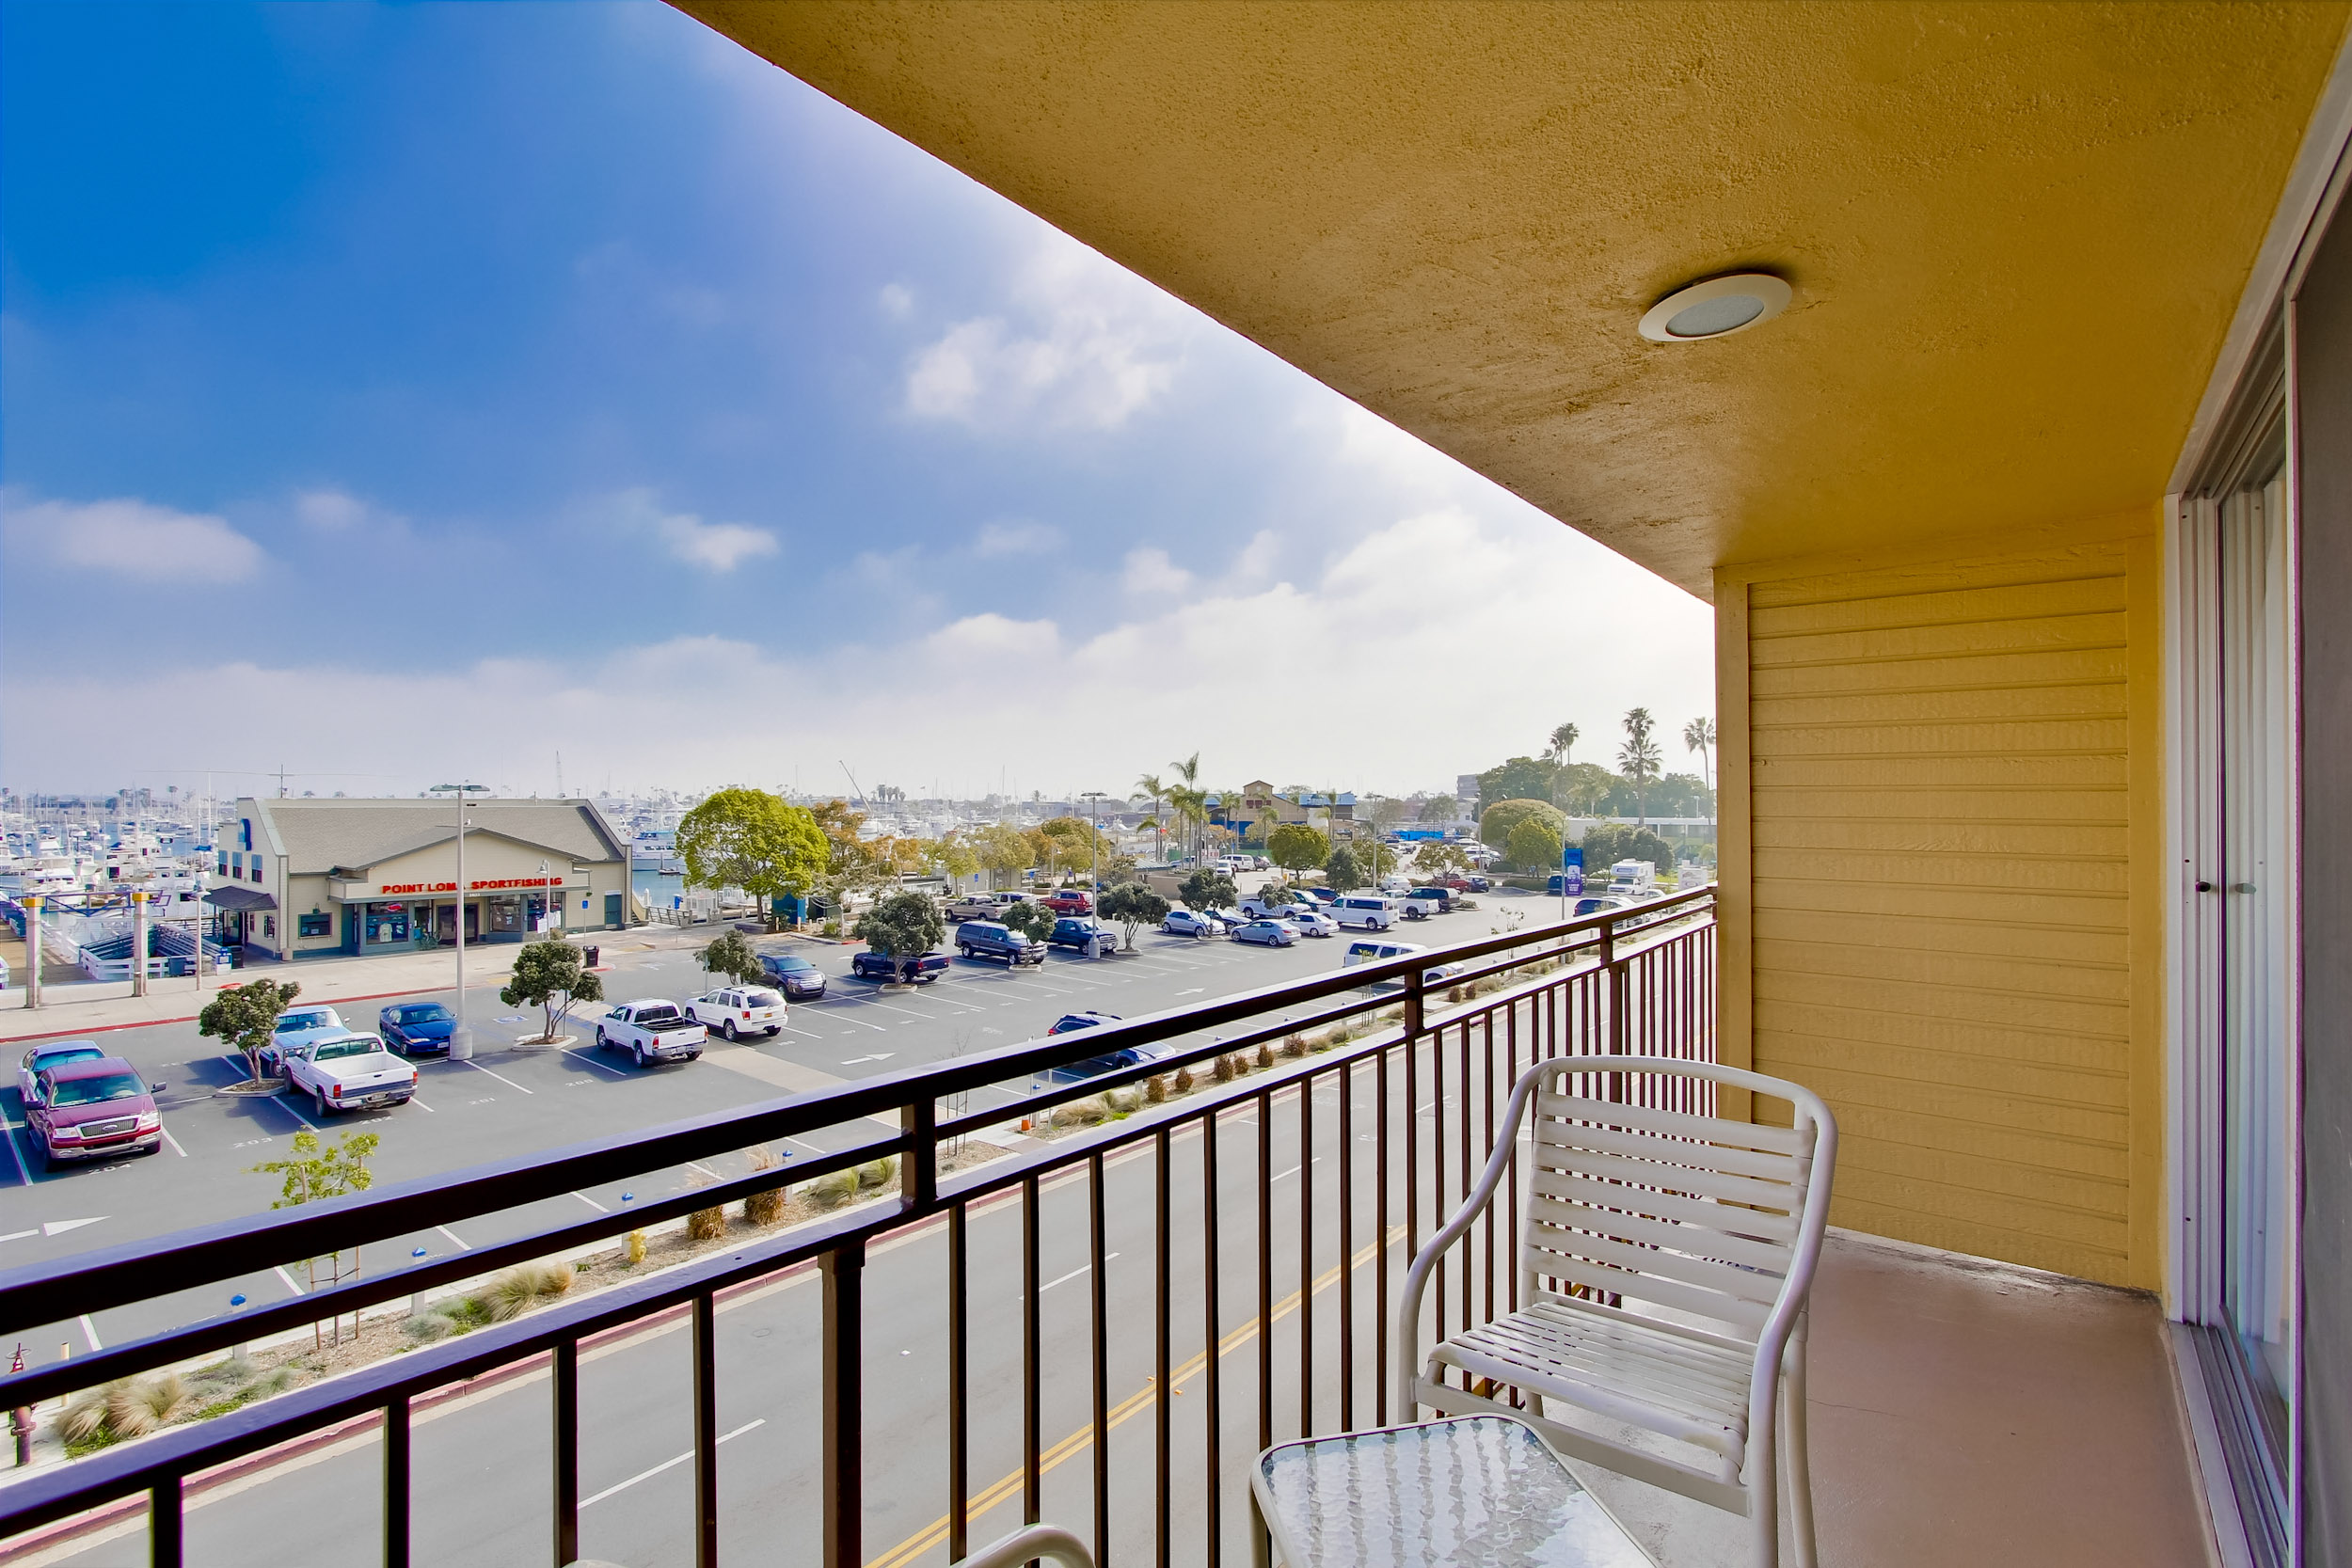 Ramada San Diego Airport - Some of our guest rooms enjoy private balconies